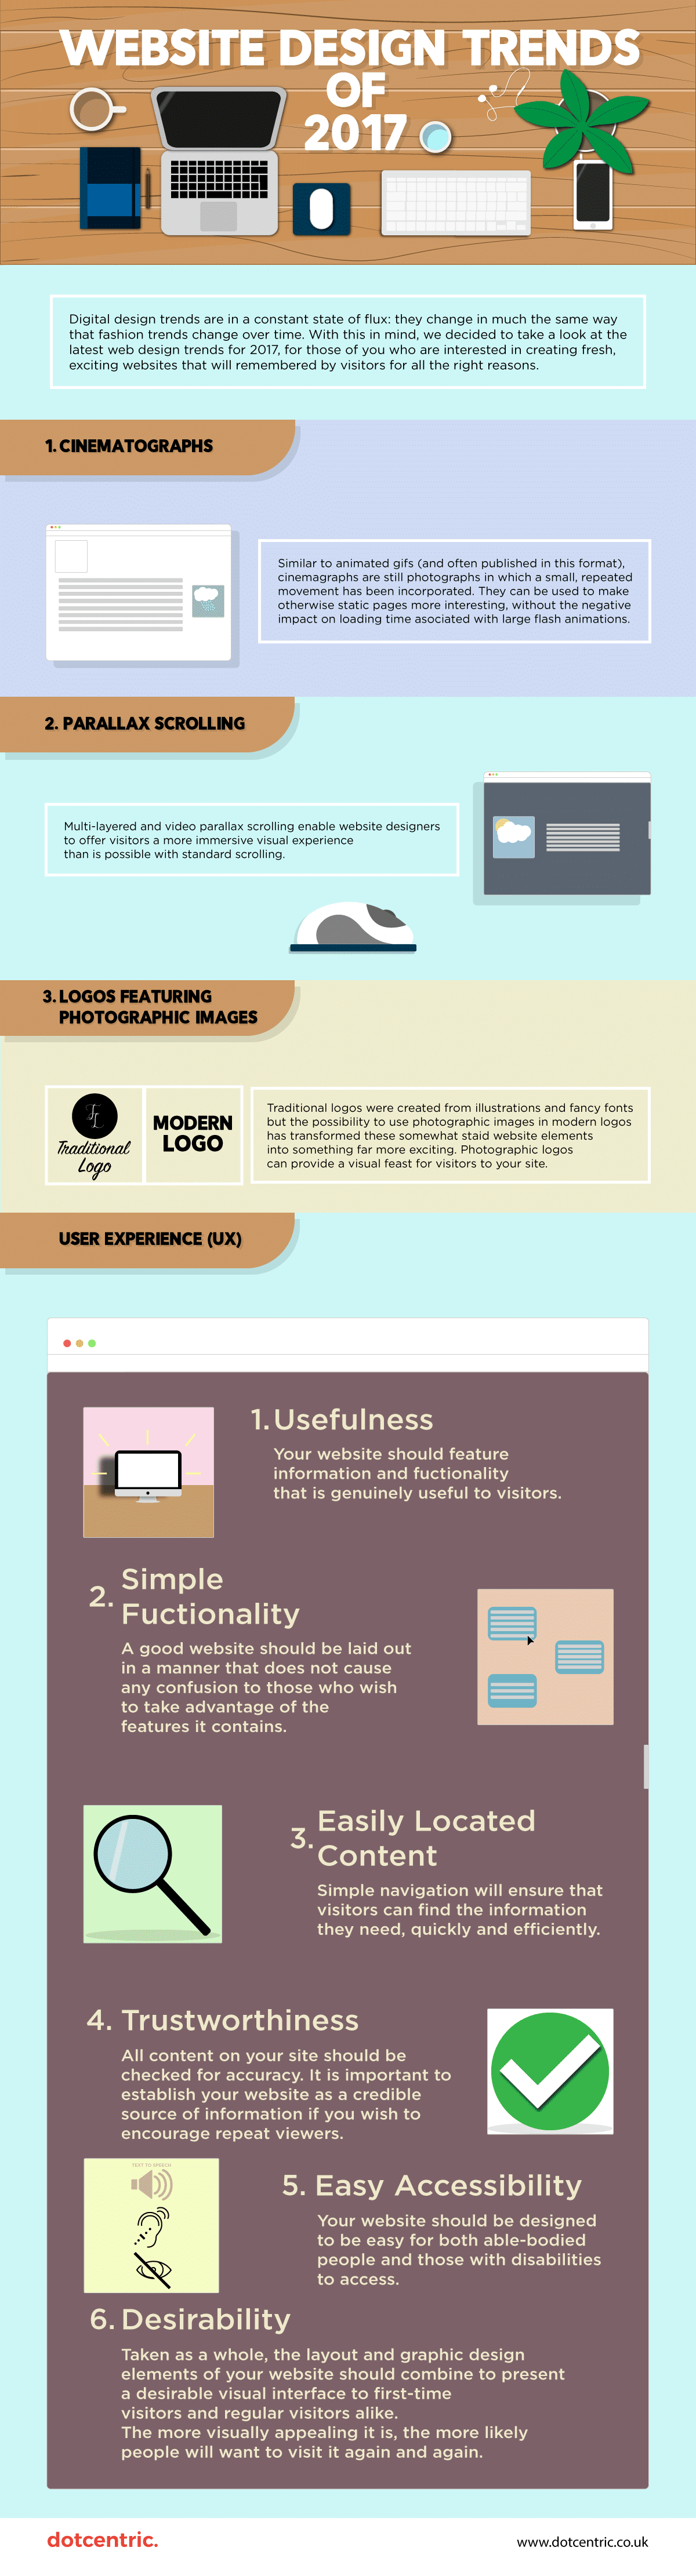 Design Trends Of 2017 Infographic